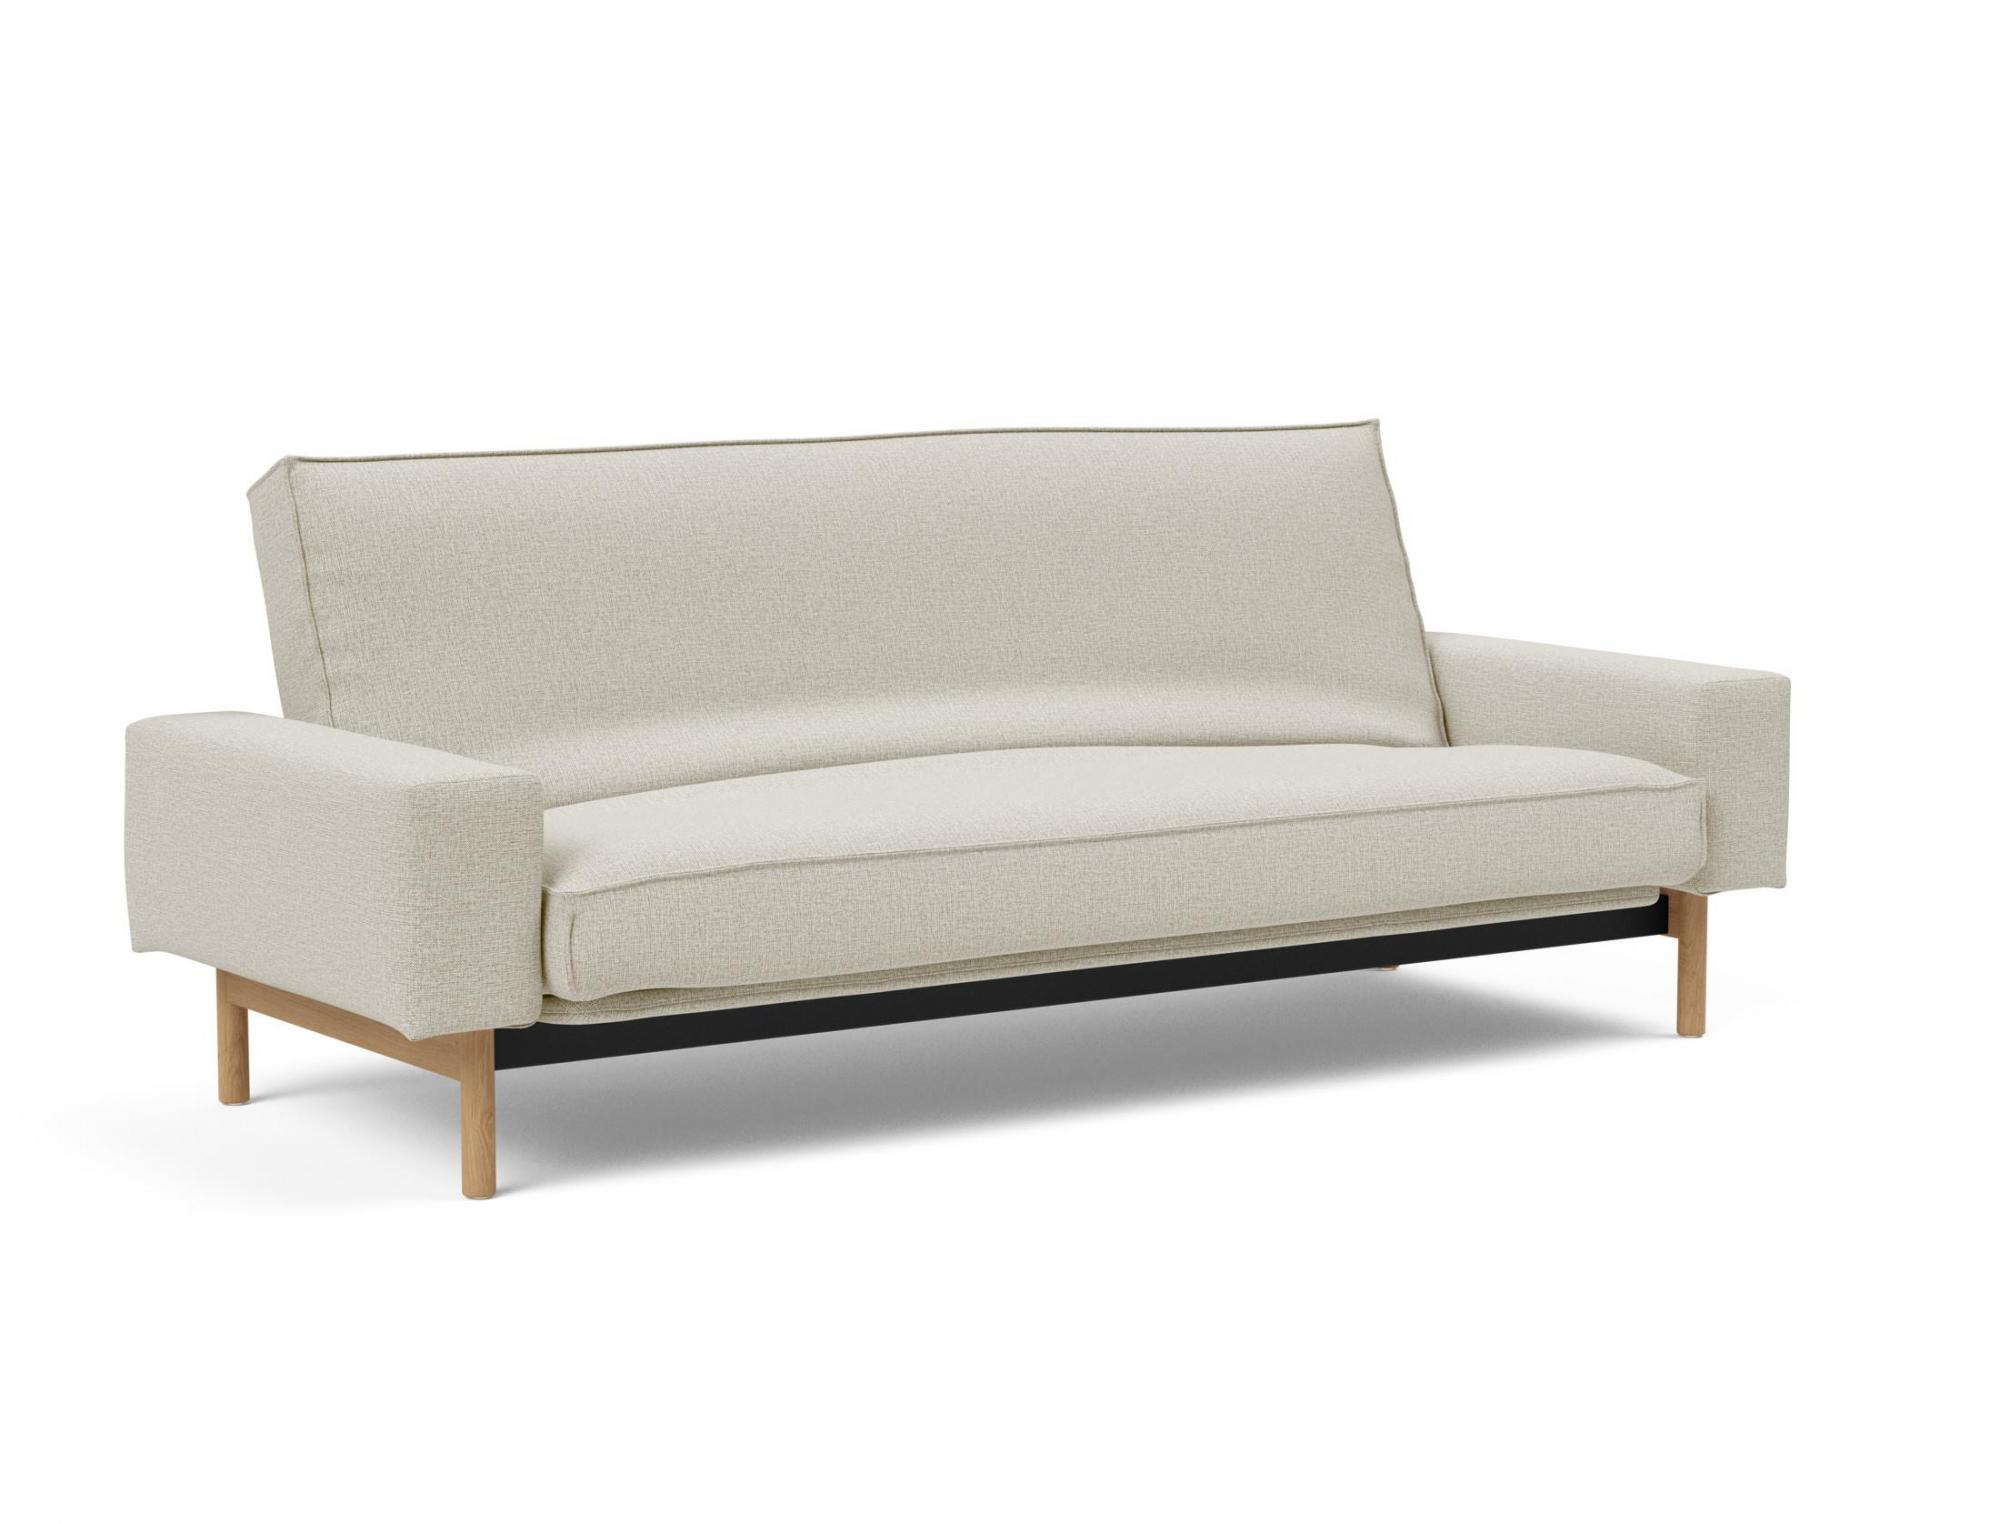 Mimer Multifunctional Sofabed Innovation Sofas